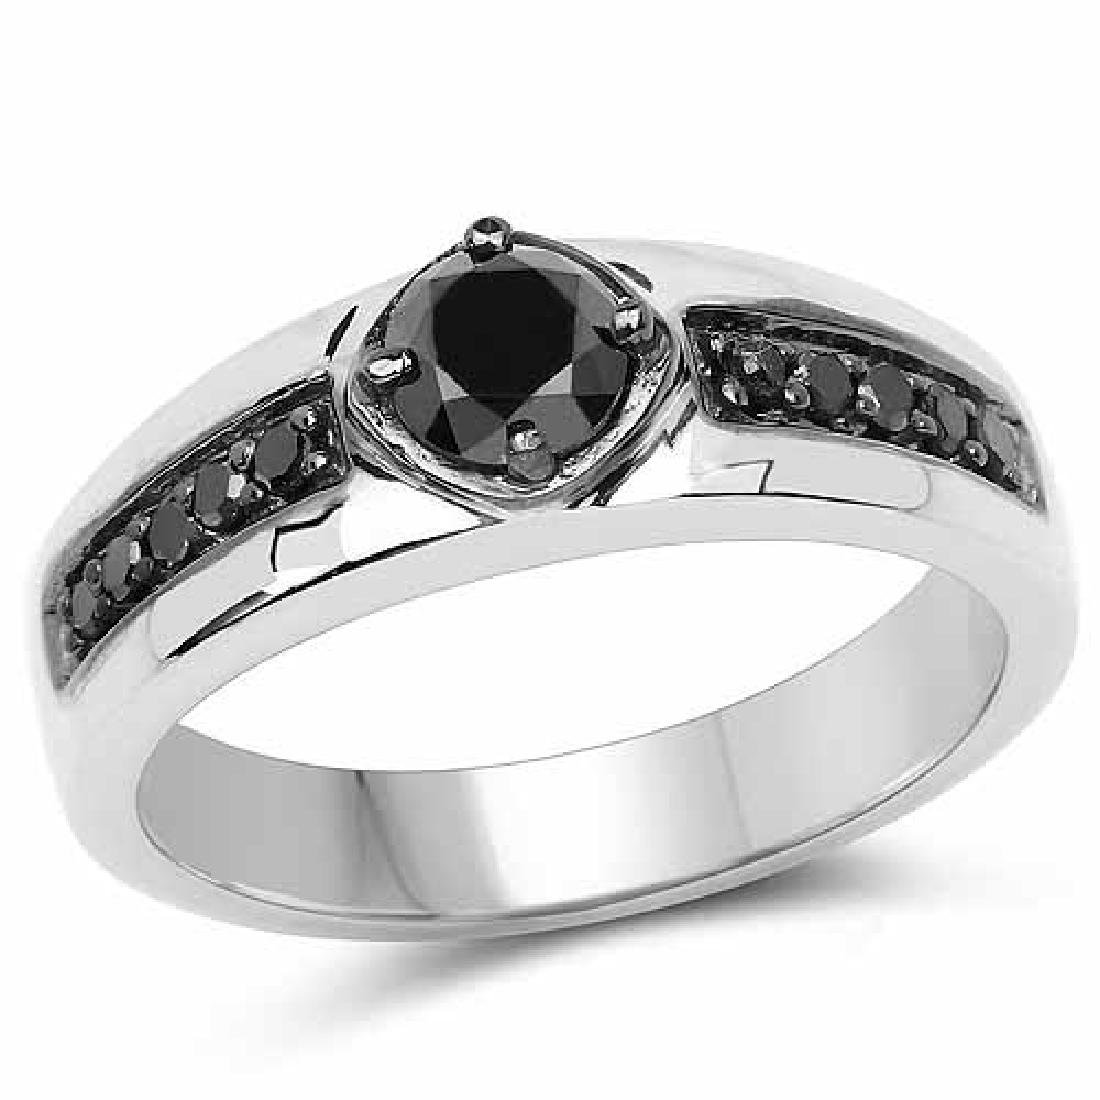 0.65 Carat Genuine Black Diamond .925 Sterling Silver R